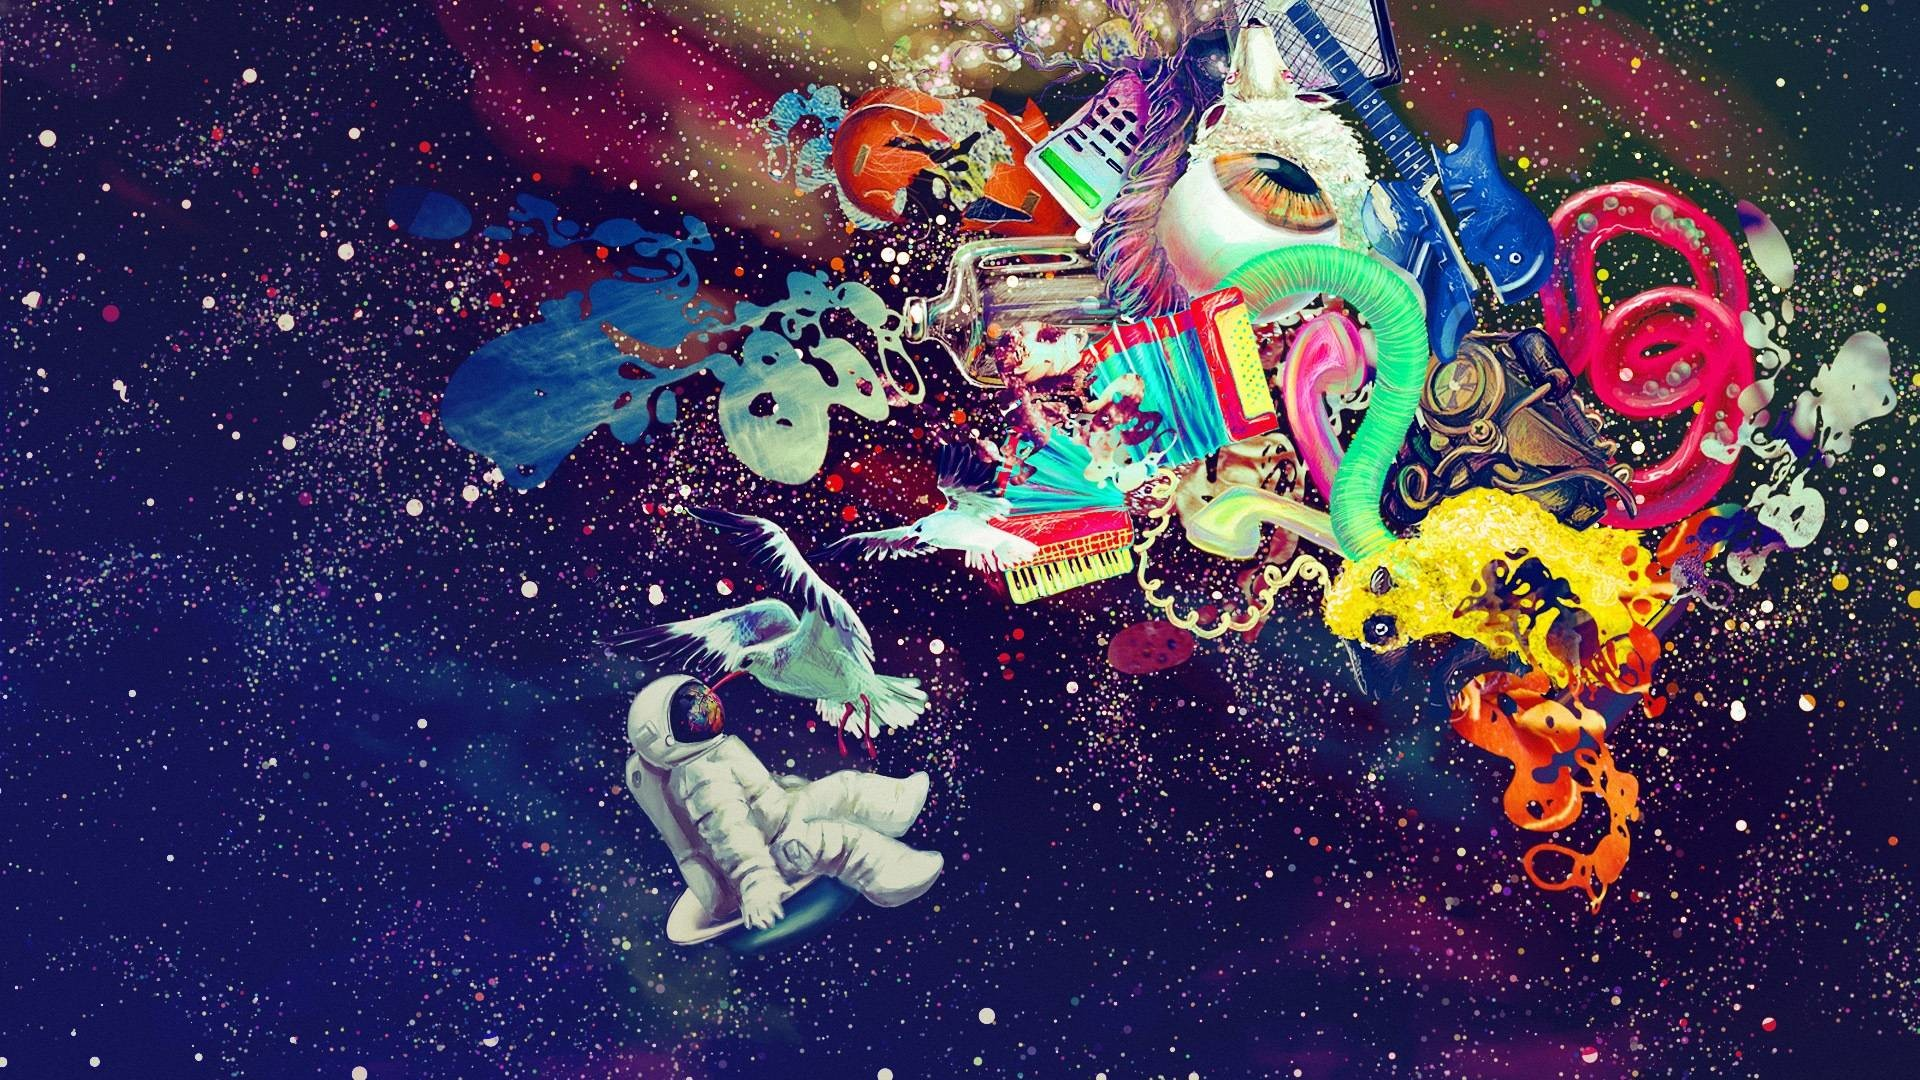 trippy abstract wallpaper ·①